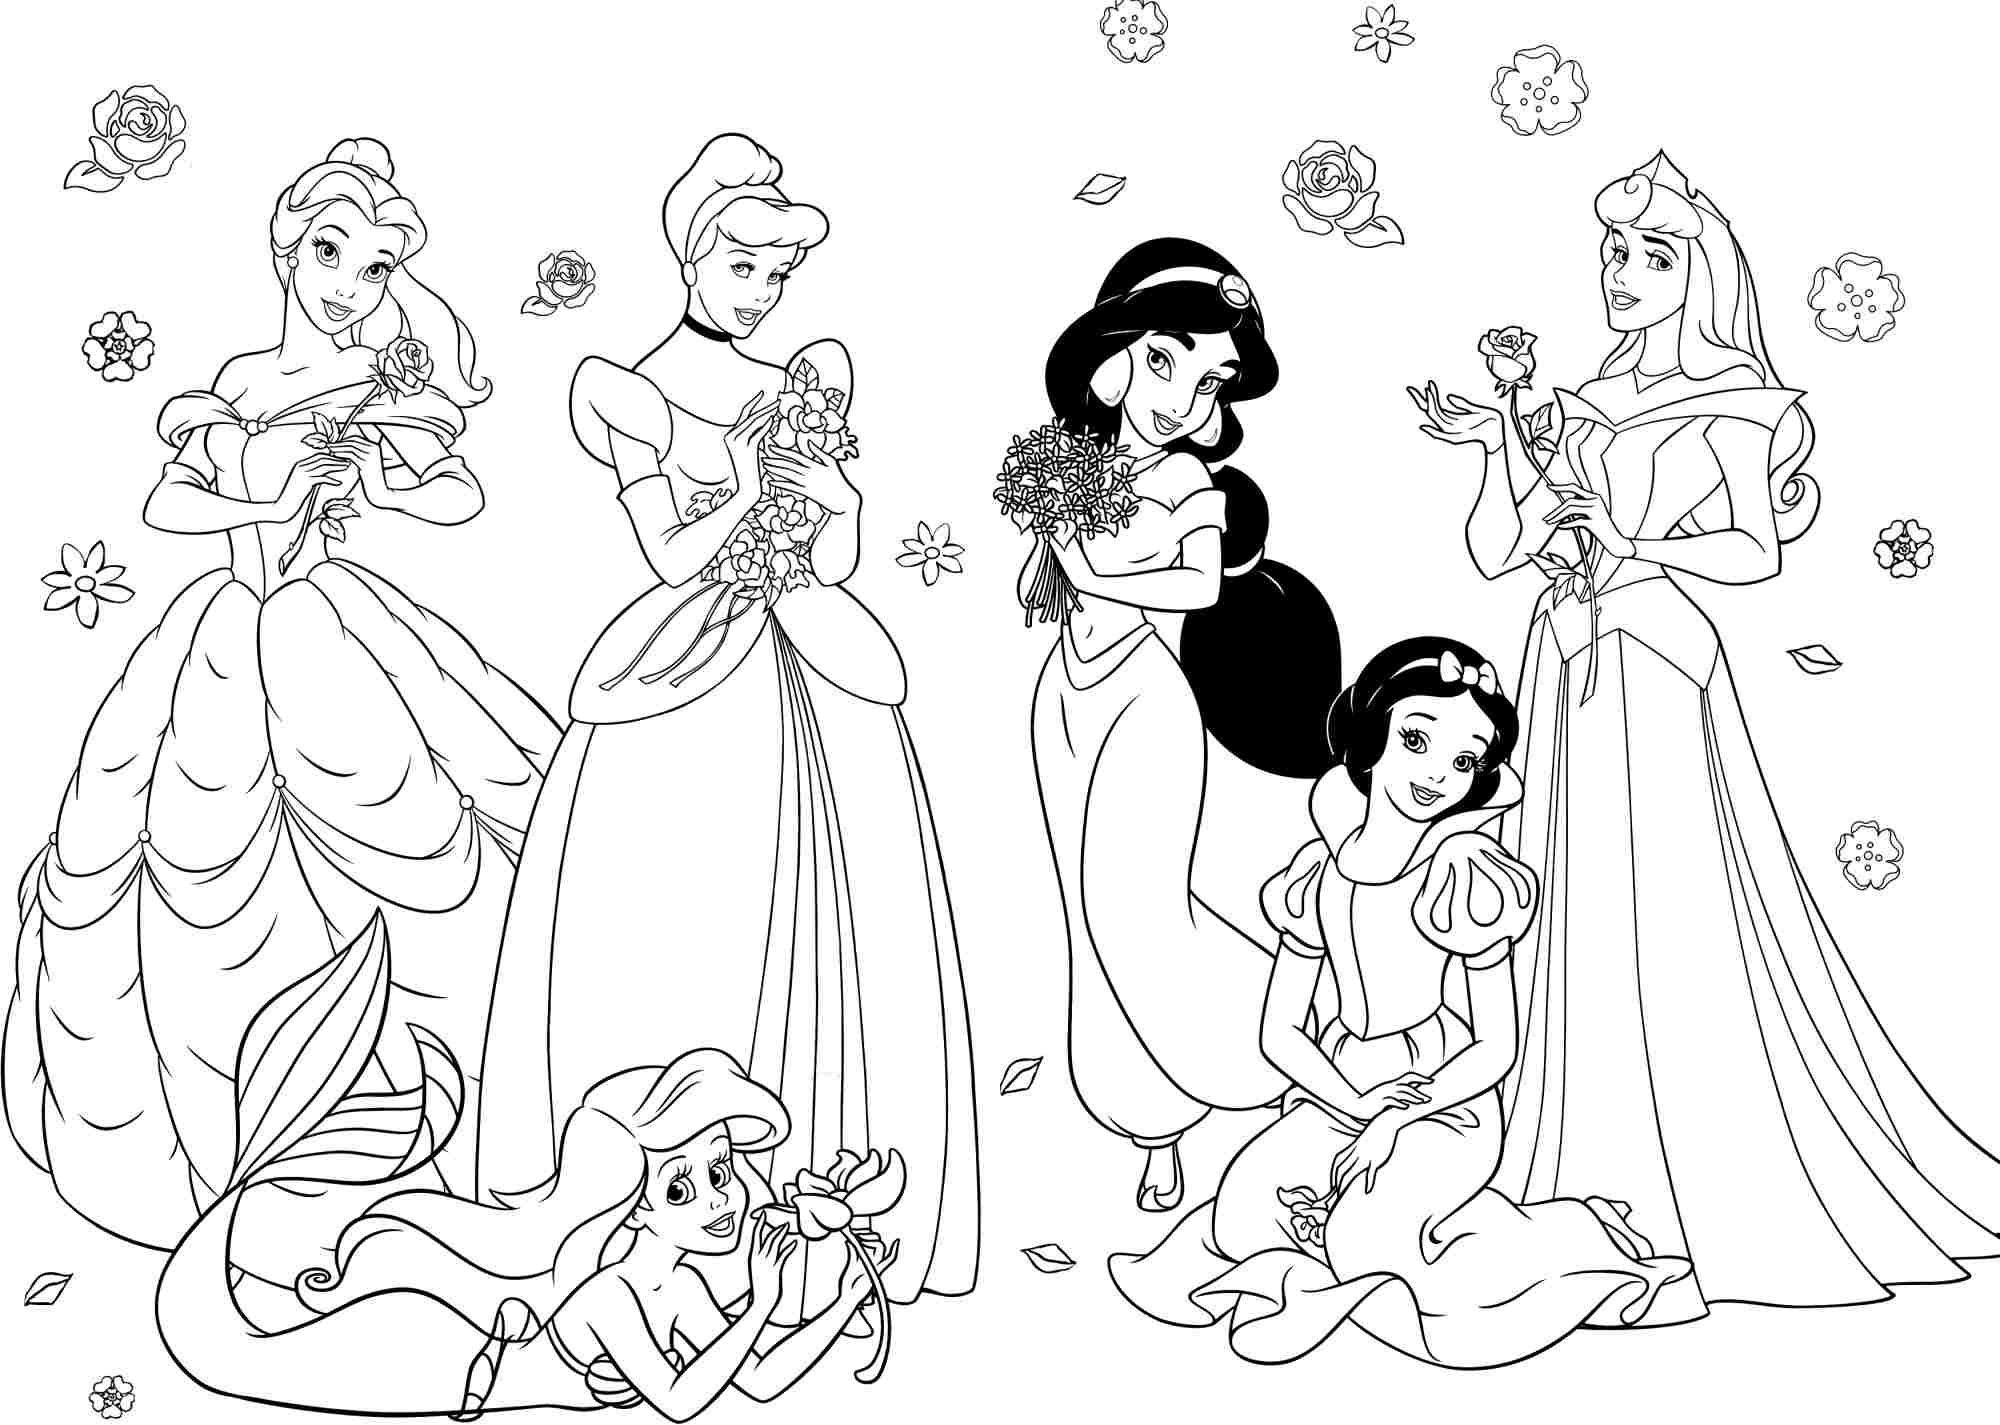 princess coloring pages for girls - Free Large Images | Crafting ...